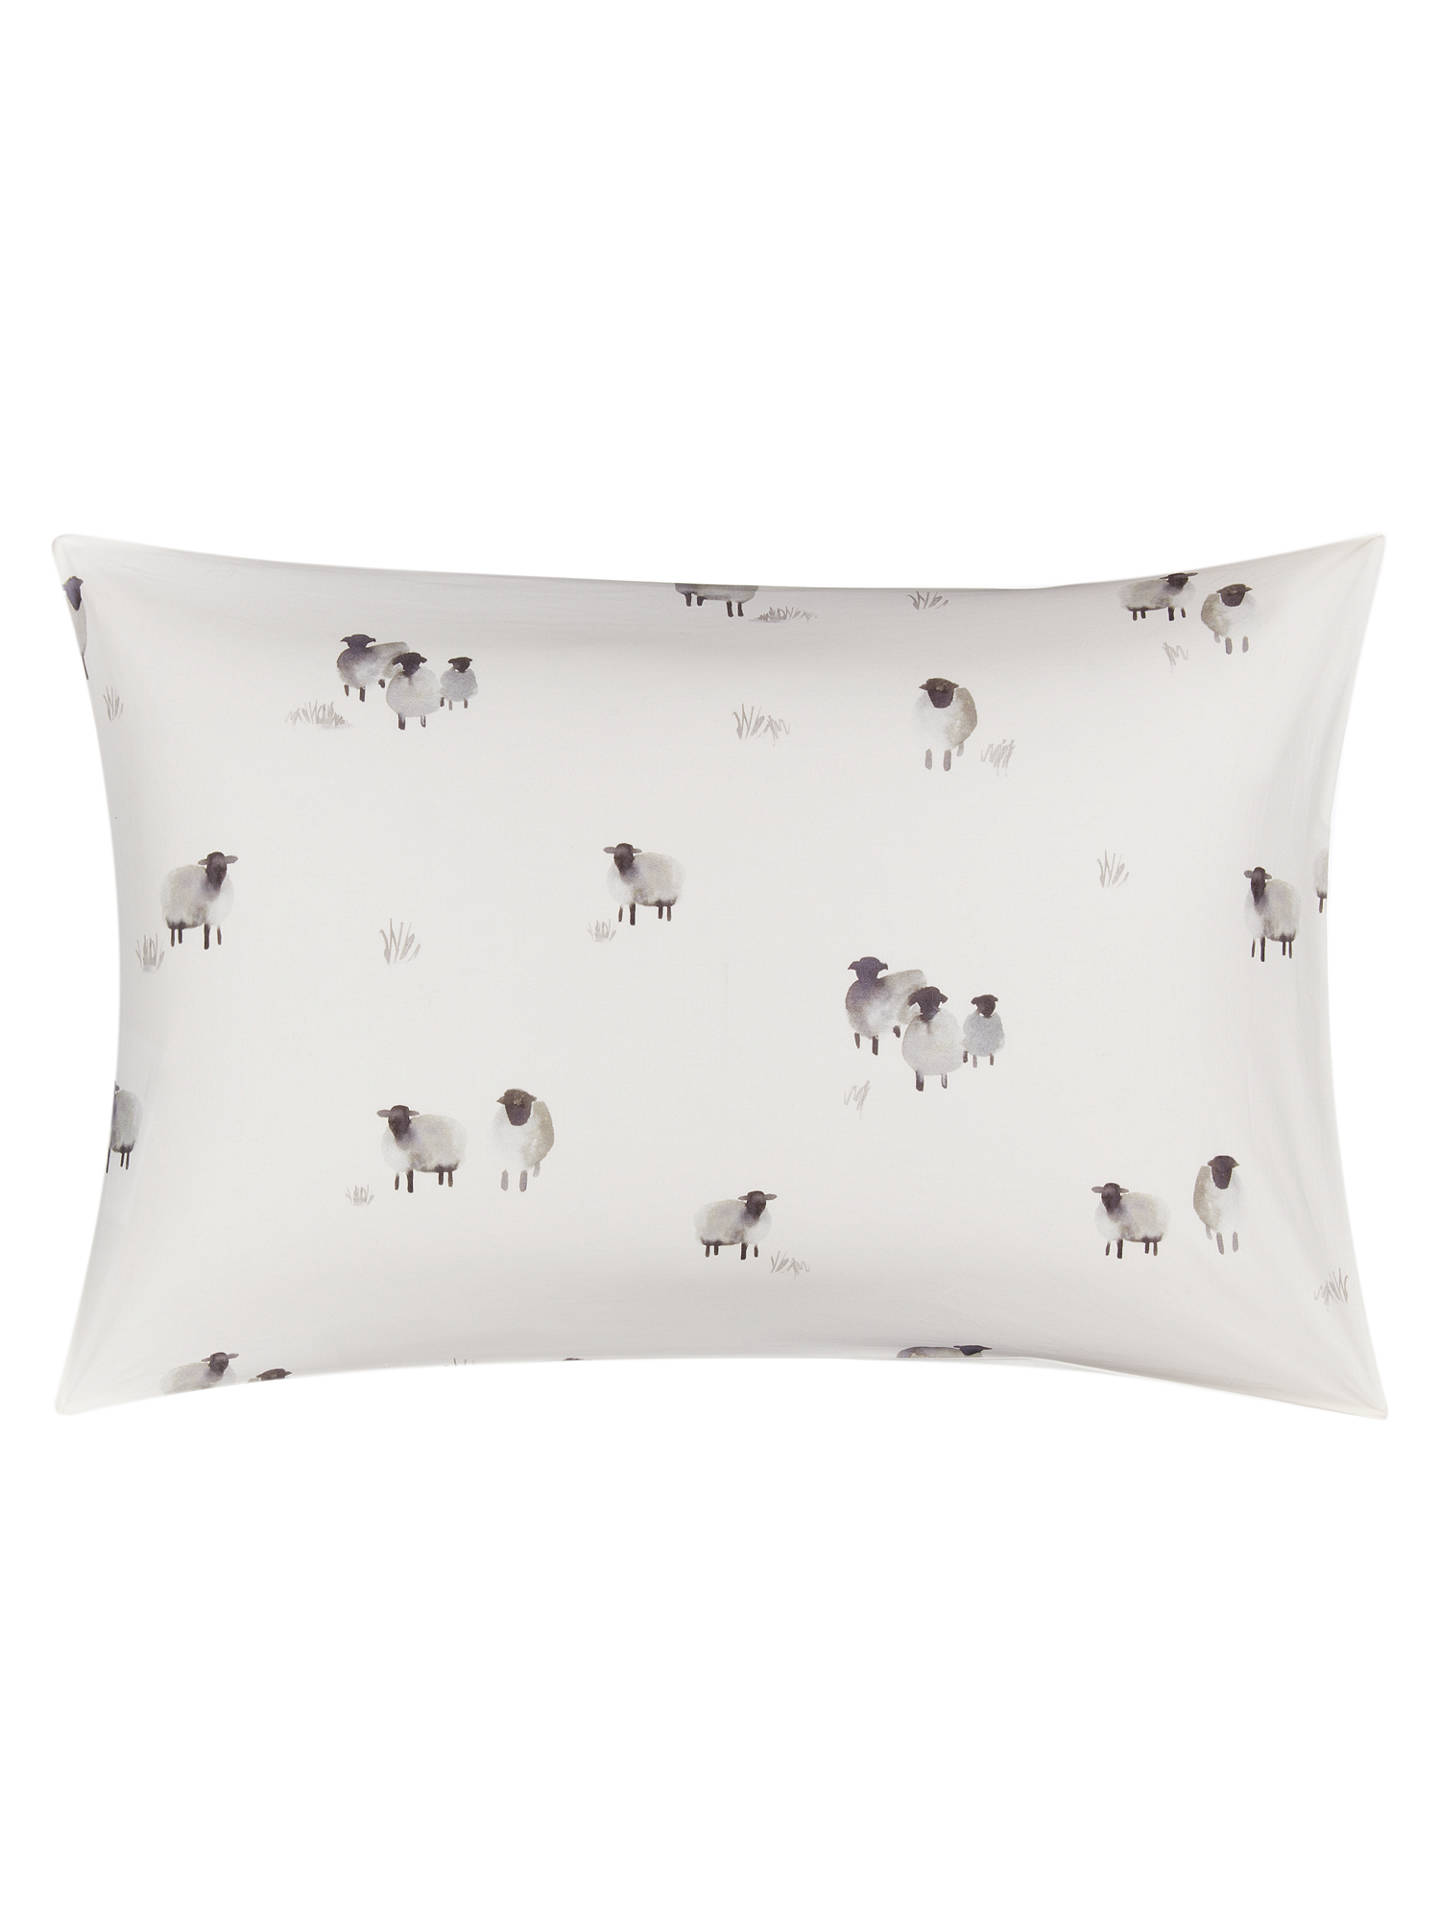 BuyJohn Lewis & Partners Crisp and Fresh Highland Sheep Print Cotton Duvet Cover and Pillowcase Set, Single Online at johnlewis.com